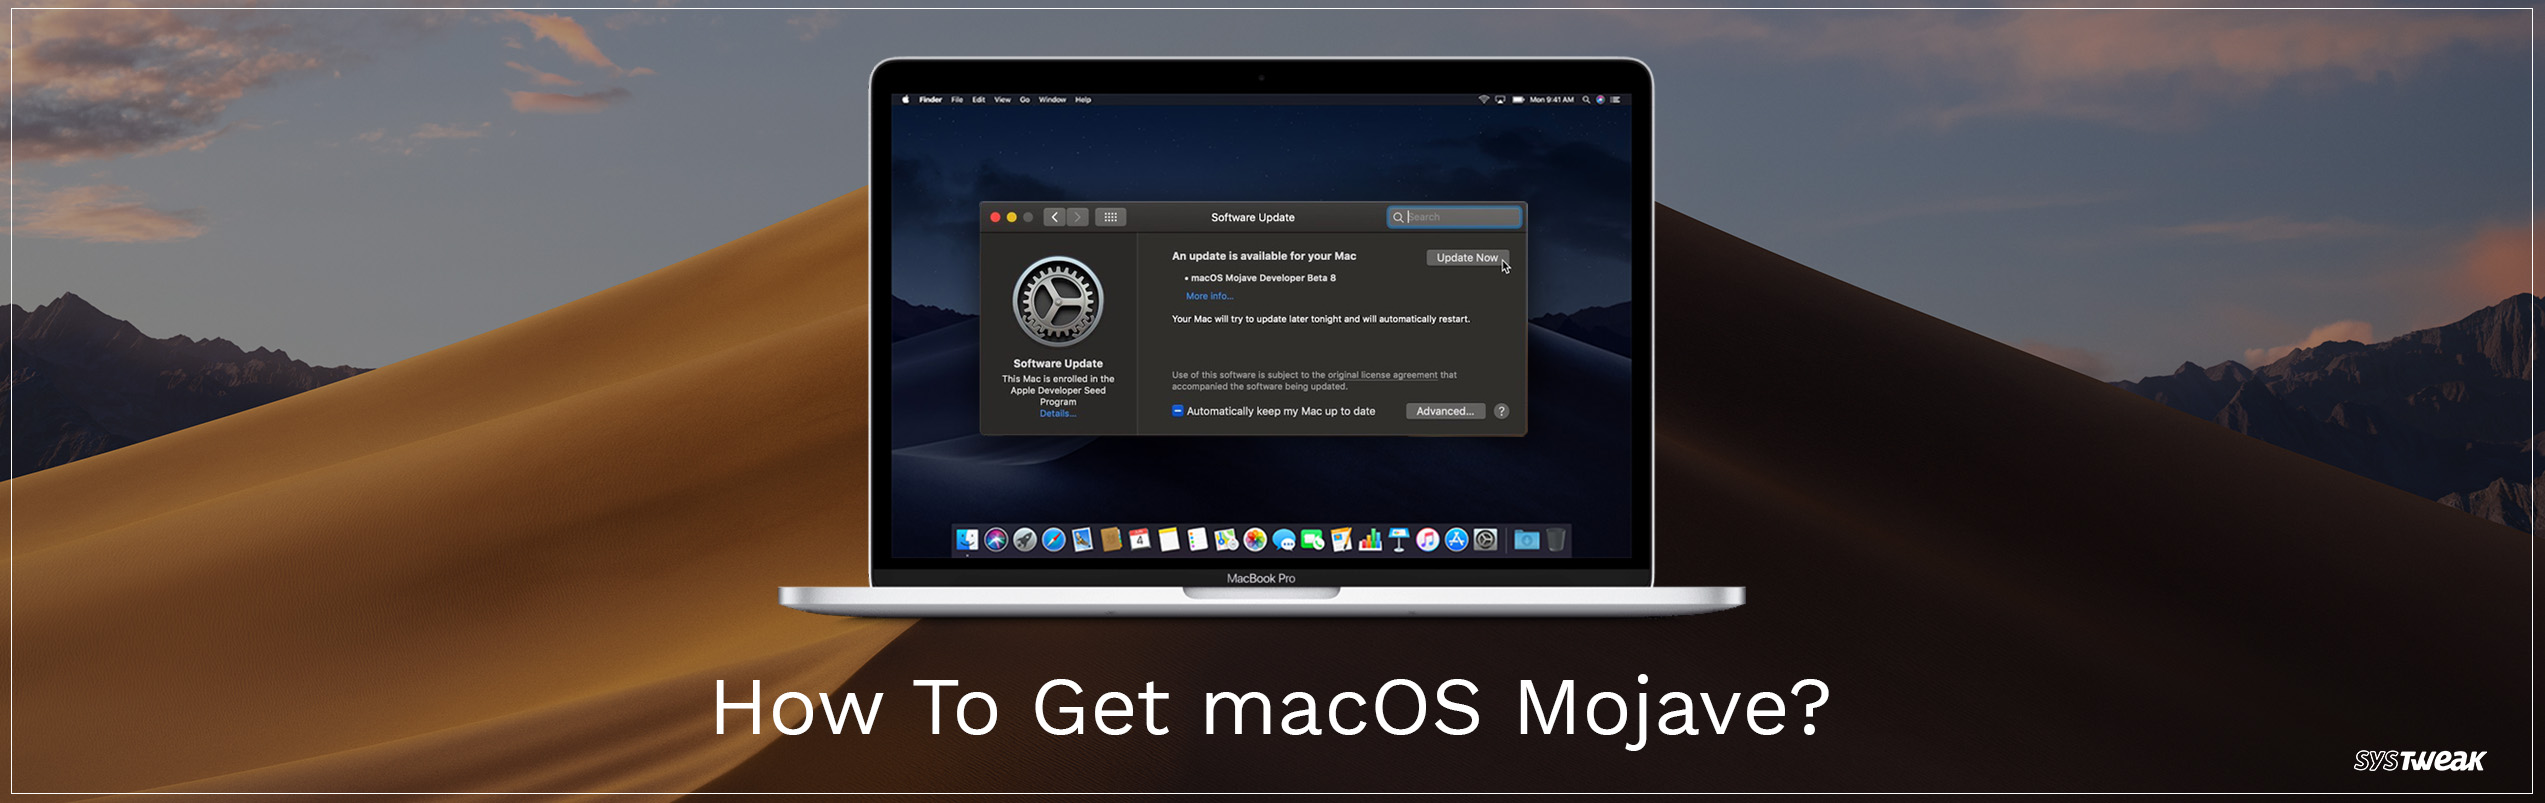 How to upgrade to macOS Mojave?